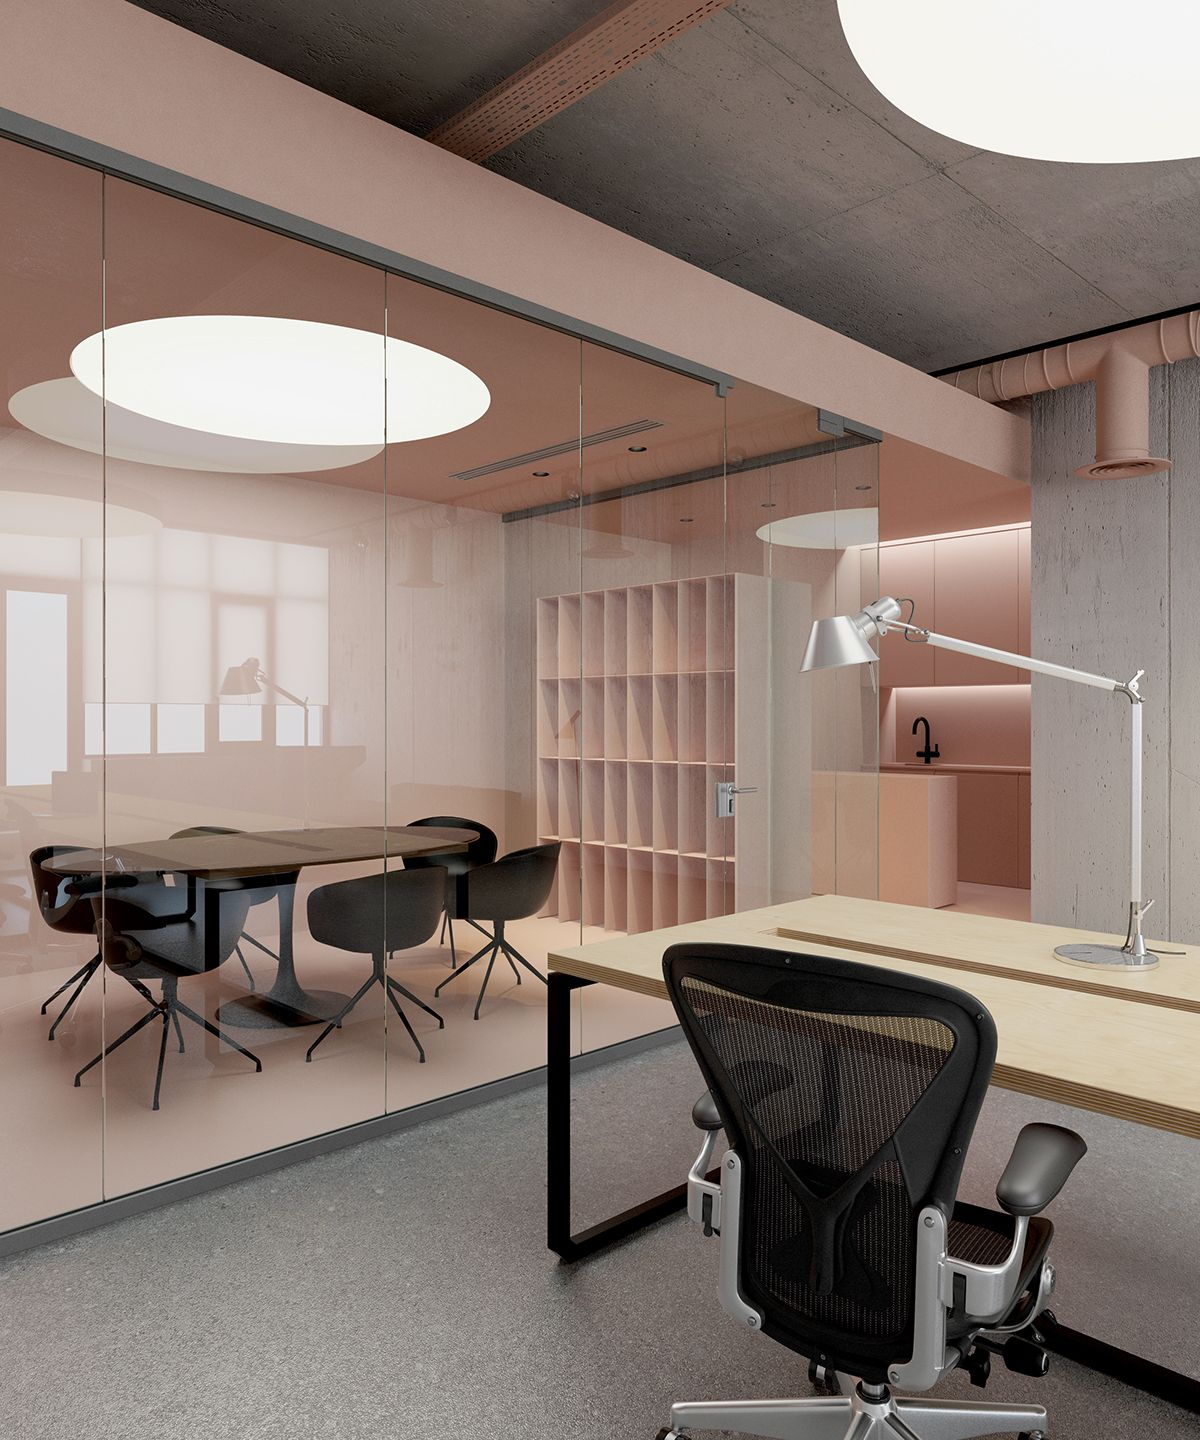 Nuon Office by HEYLIGERS Design+Projects | New office | Pinterest | Design  projects, Office interiors and Office designs